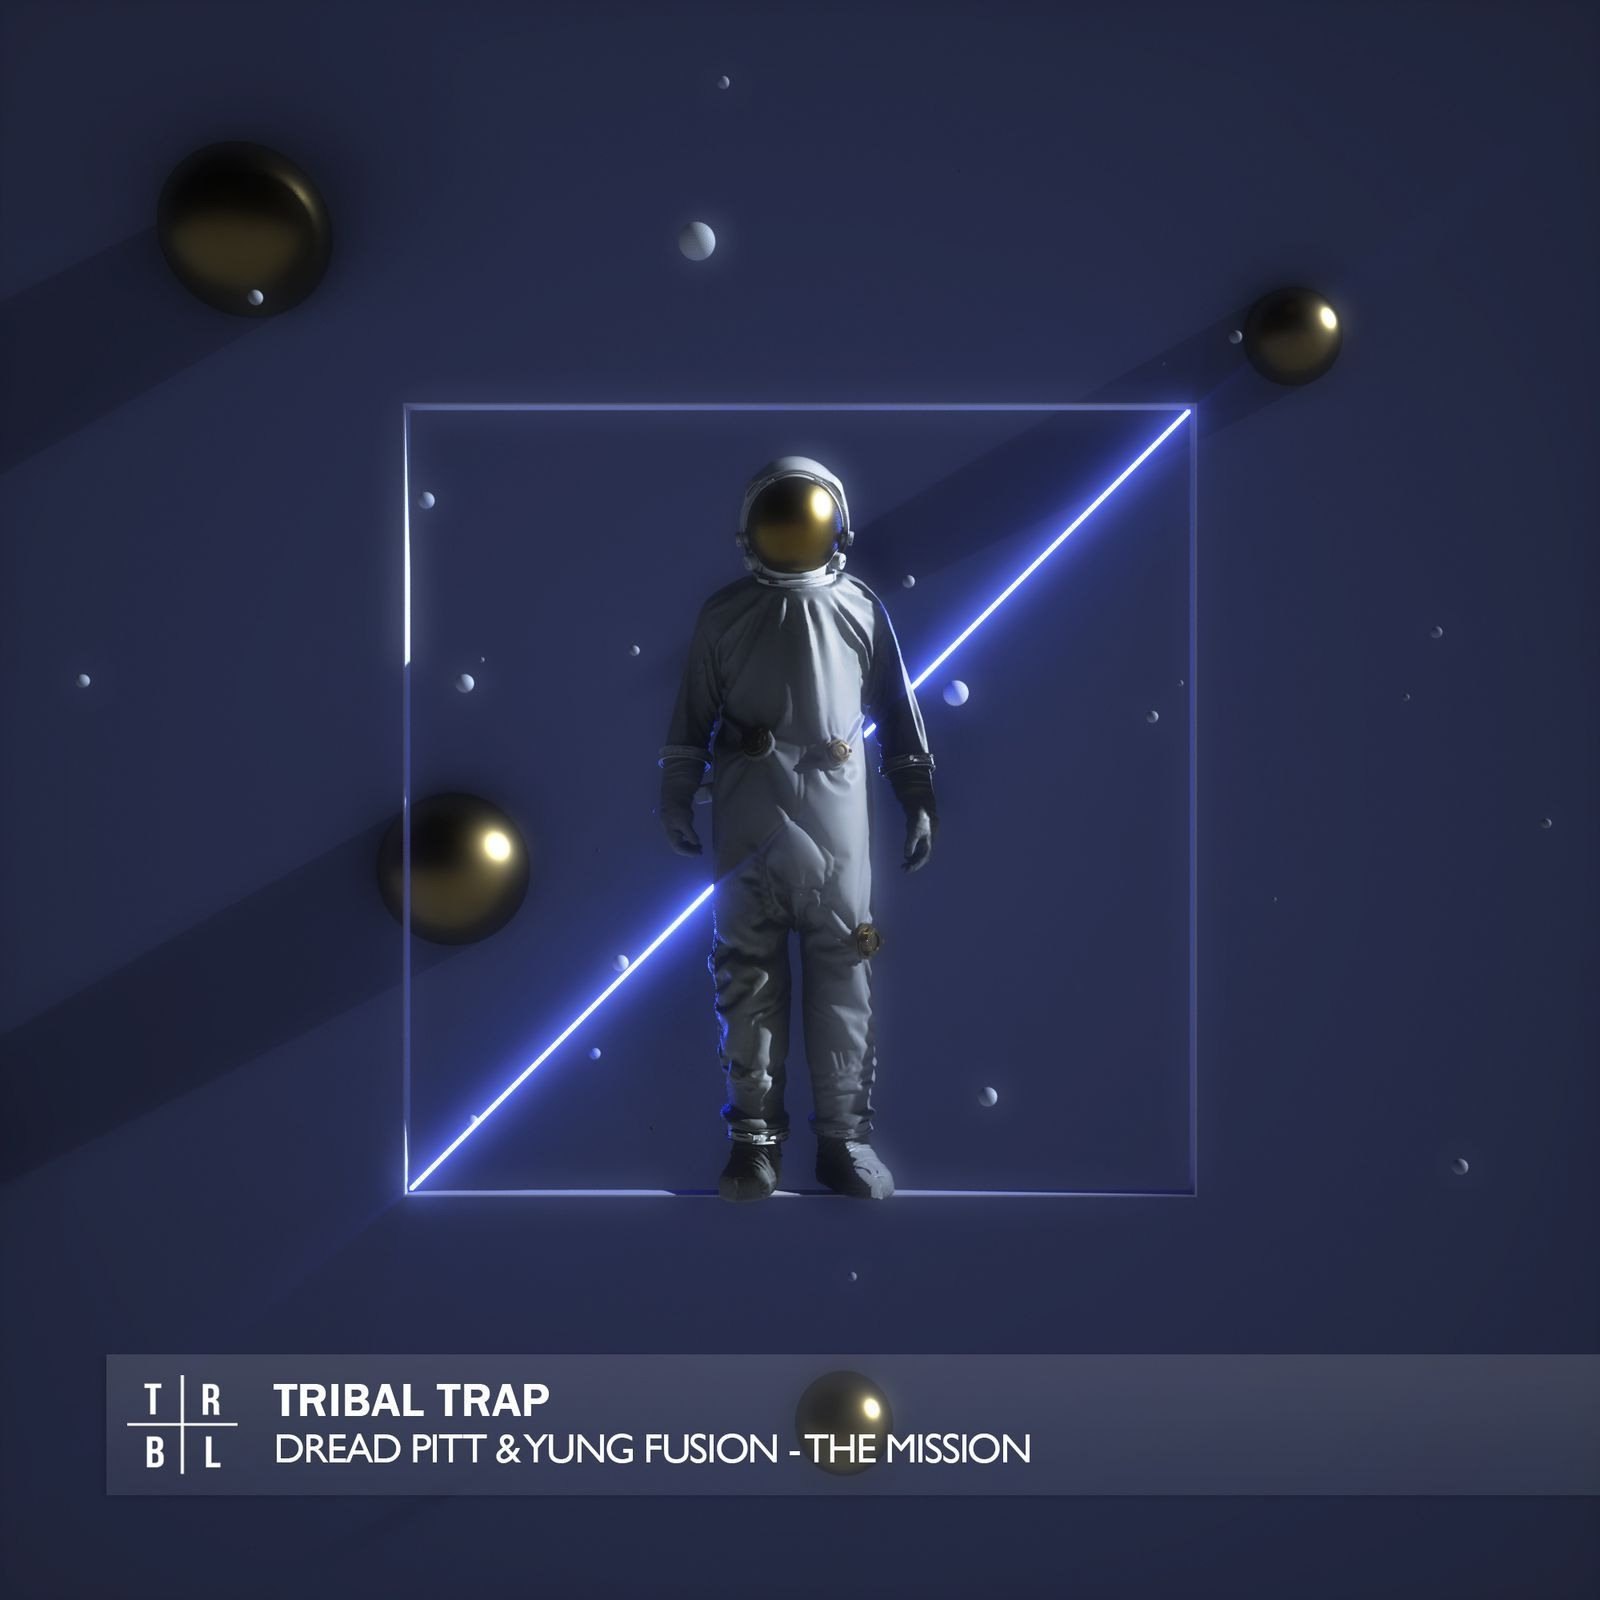 The Mission by Dread Pitt & Yung Fusion from Tribal Trap: Listen for